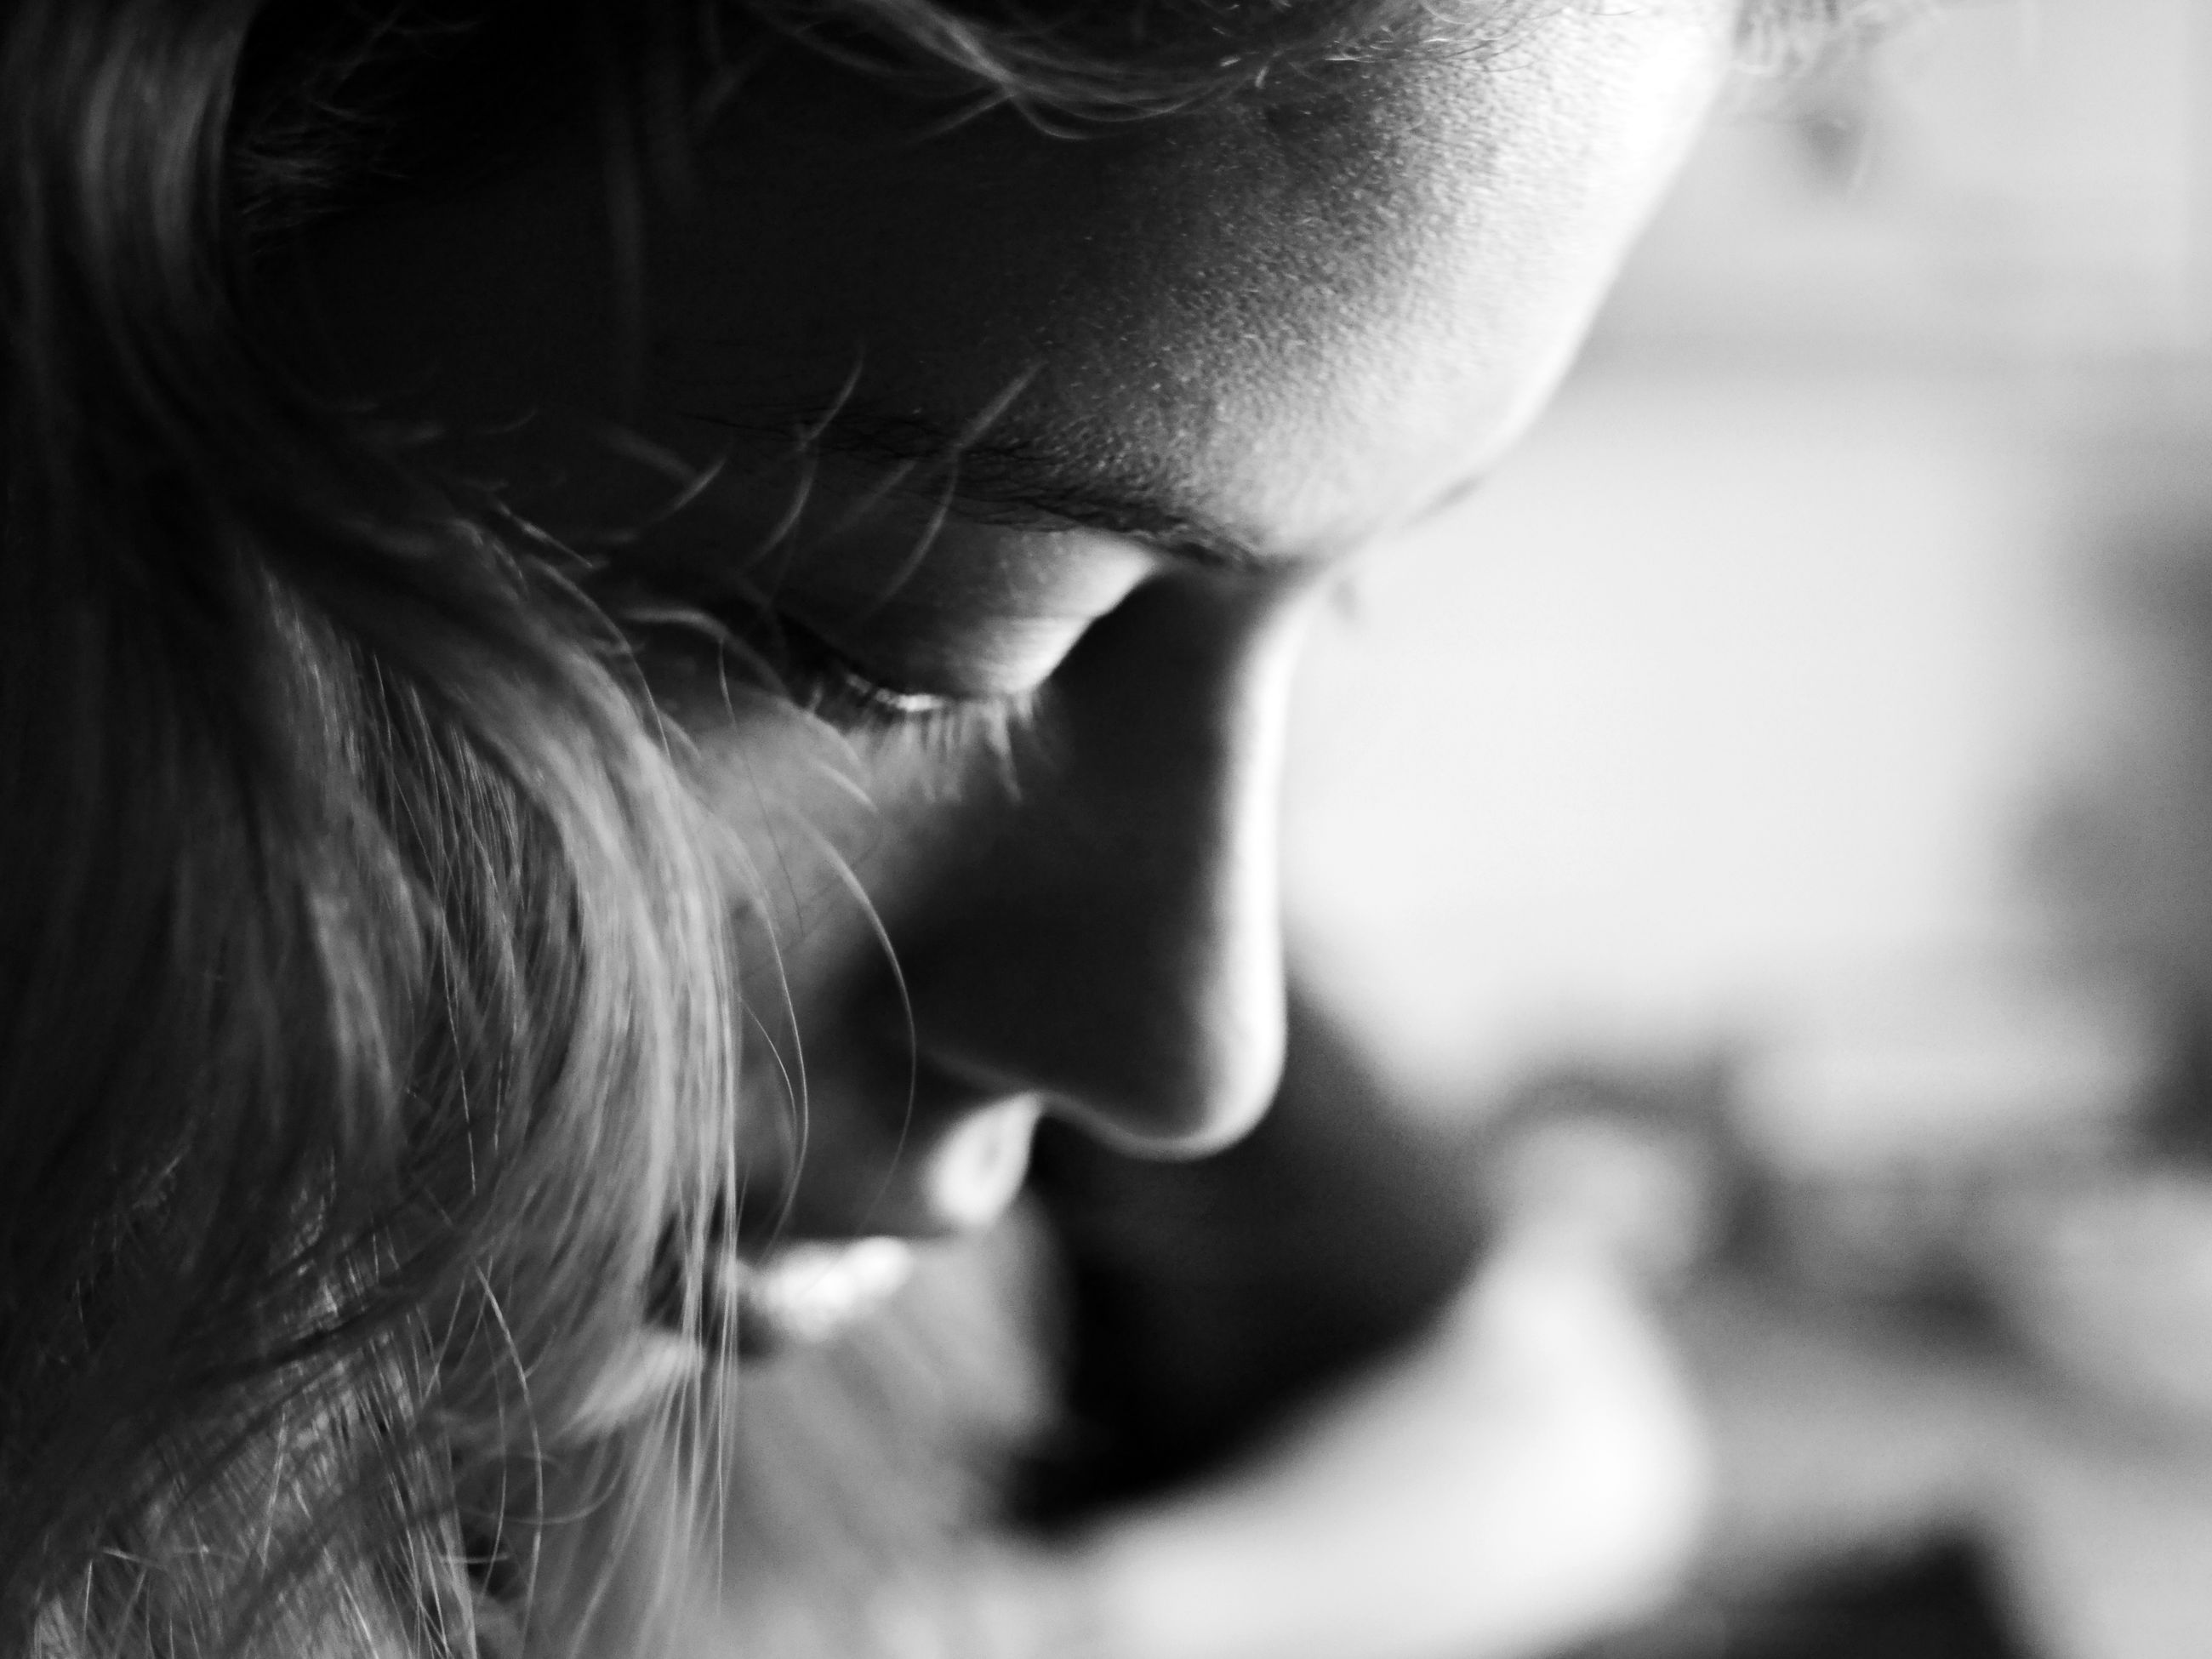 real people, one person, close-up, focus on foreground, human face, human body part, indoors, day